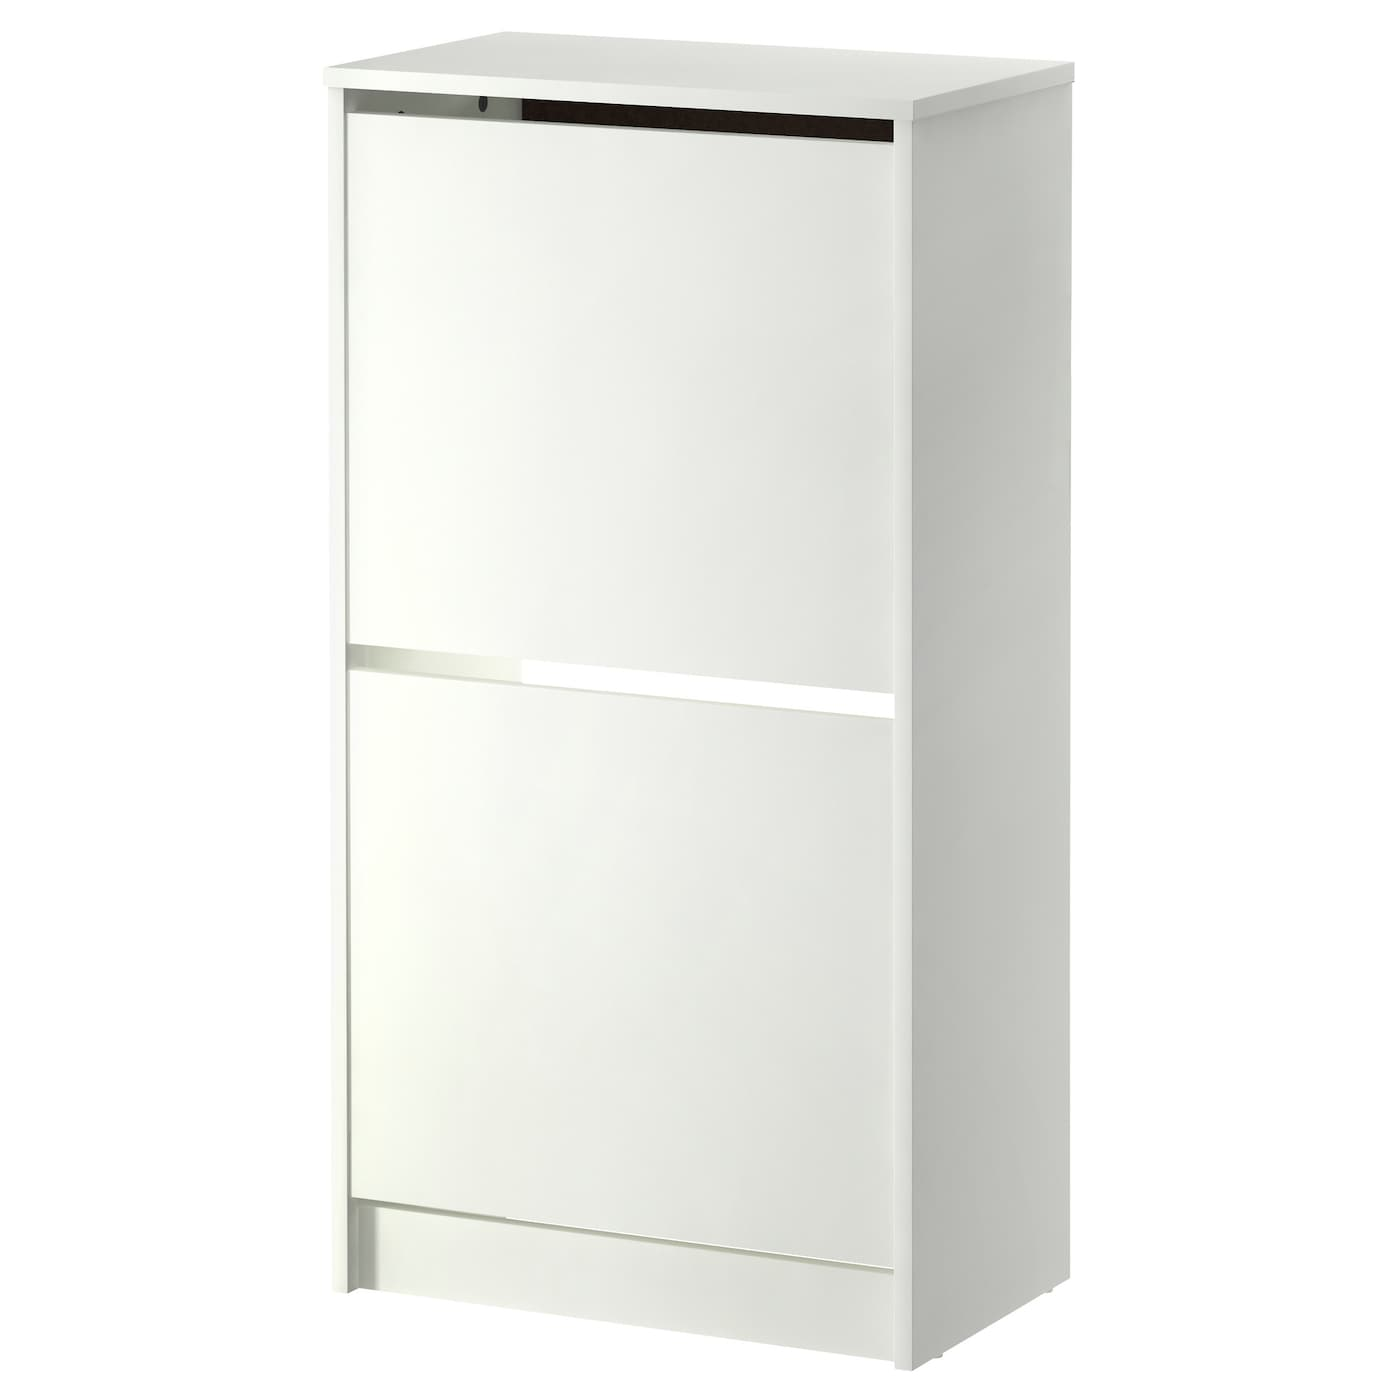 Design Ikea Shoe Storage bissa shoe cabinet with 2 compartments white 49x93 cm ikea compartments